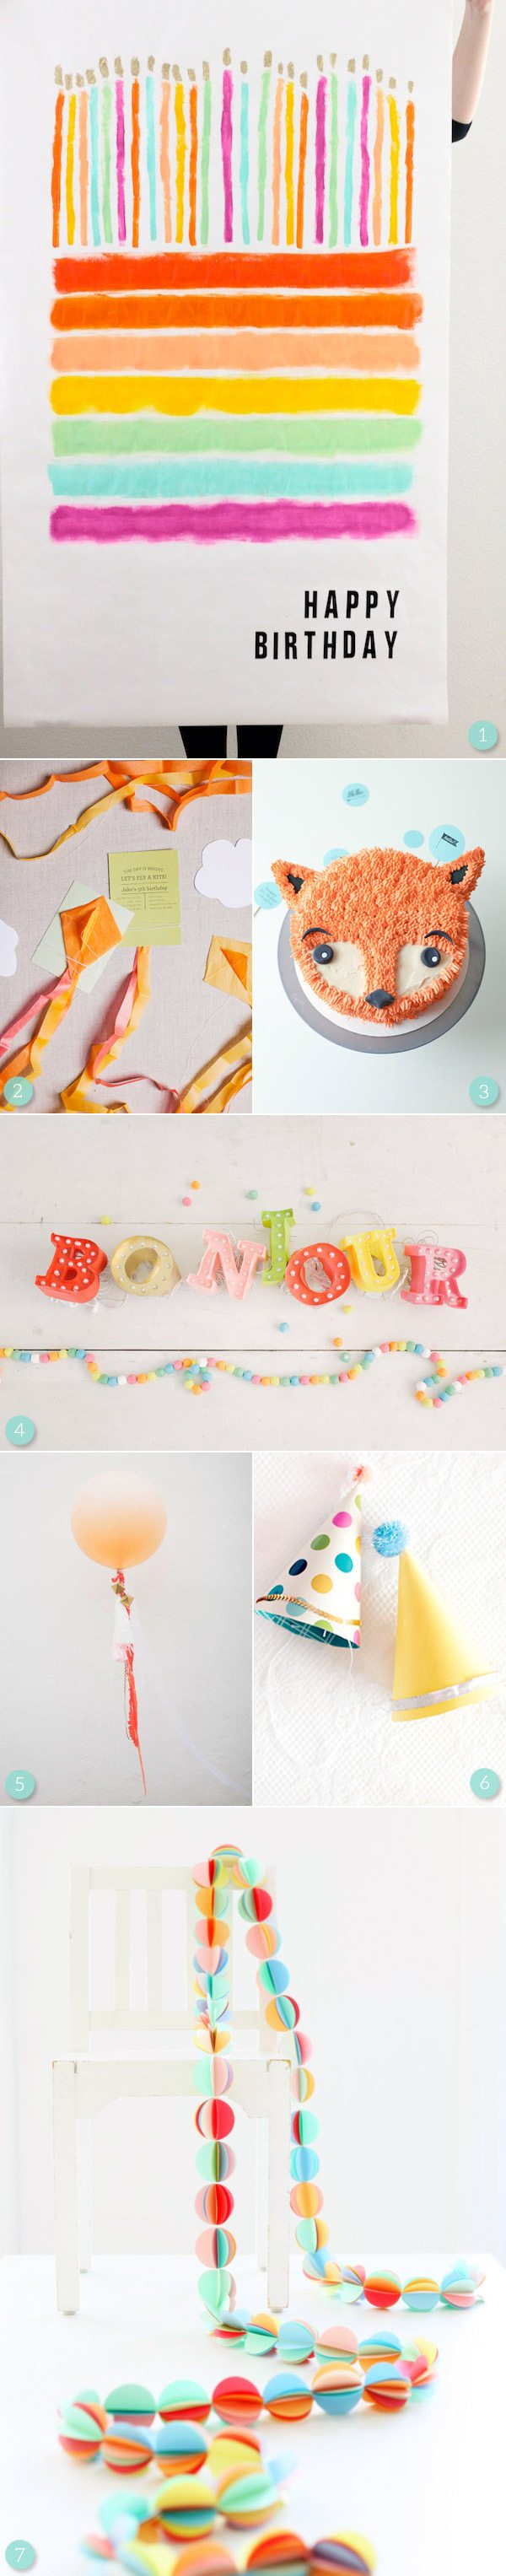 Bright Colorful Birthday Party Ideas